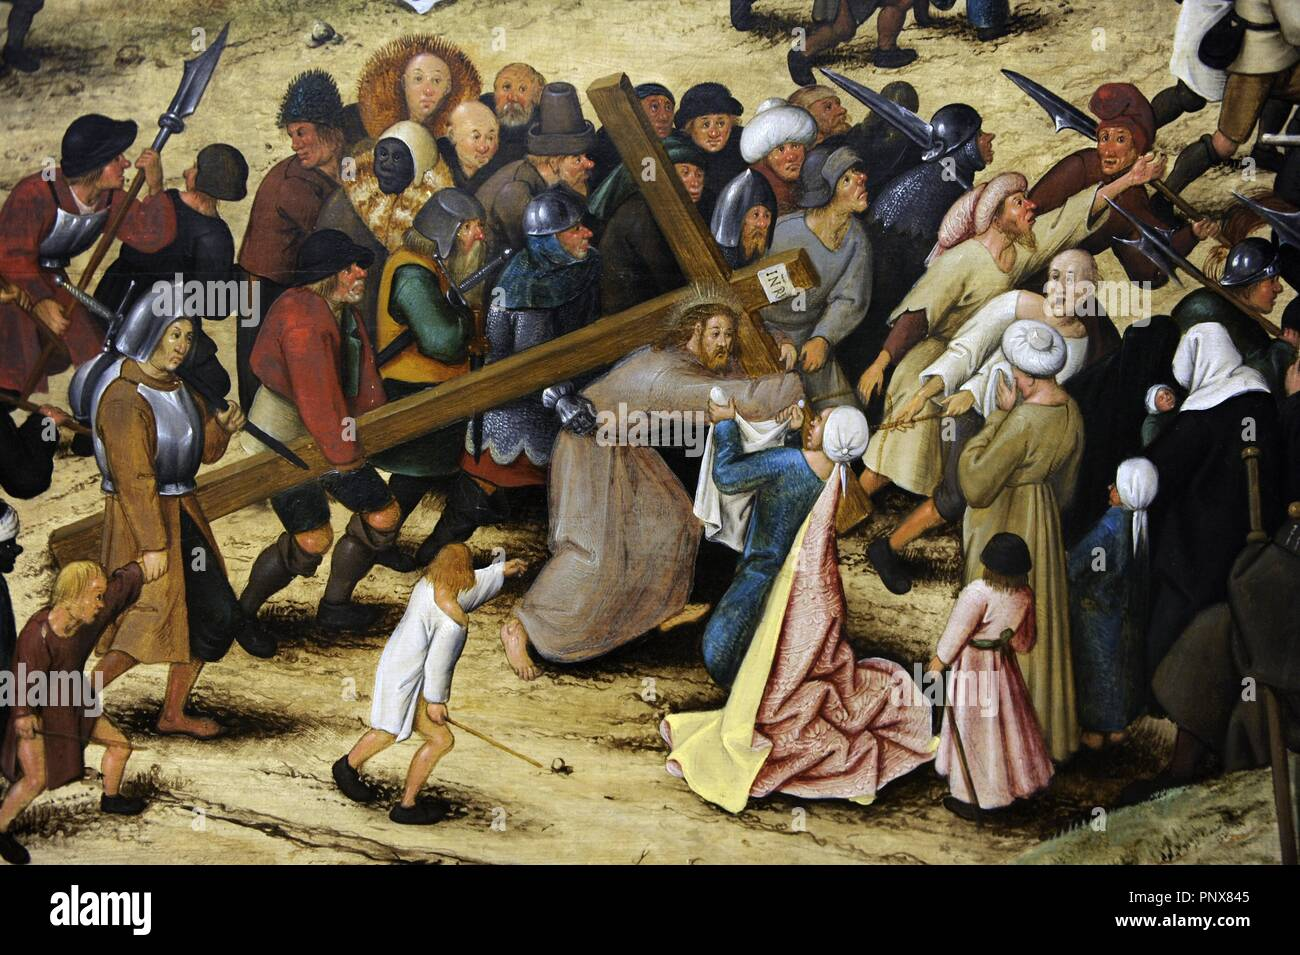 Pieter Brueghel the Younger (1564-1638). Flemish painter. The Procession to Calvary, 1602. Detail. National Museum of Art. Copenhagen. Denmark. Stock Photo